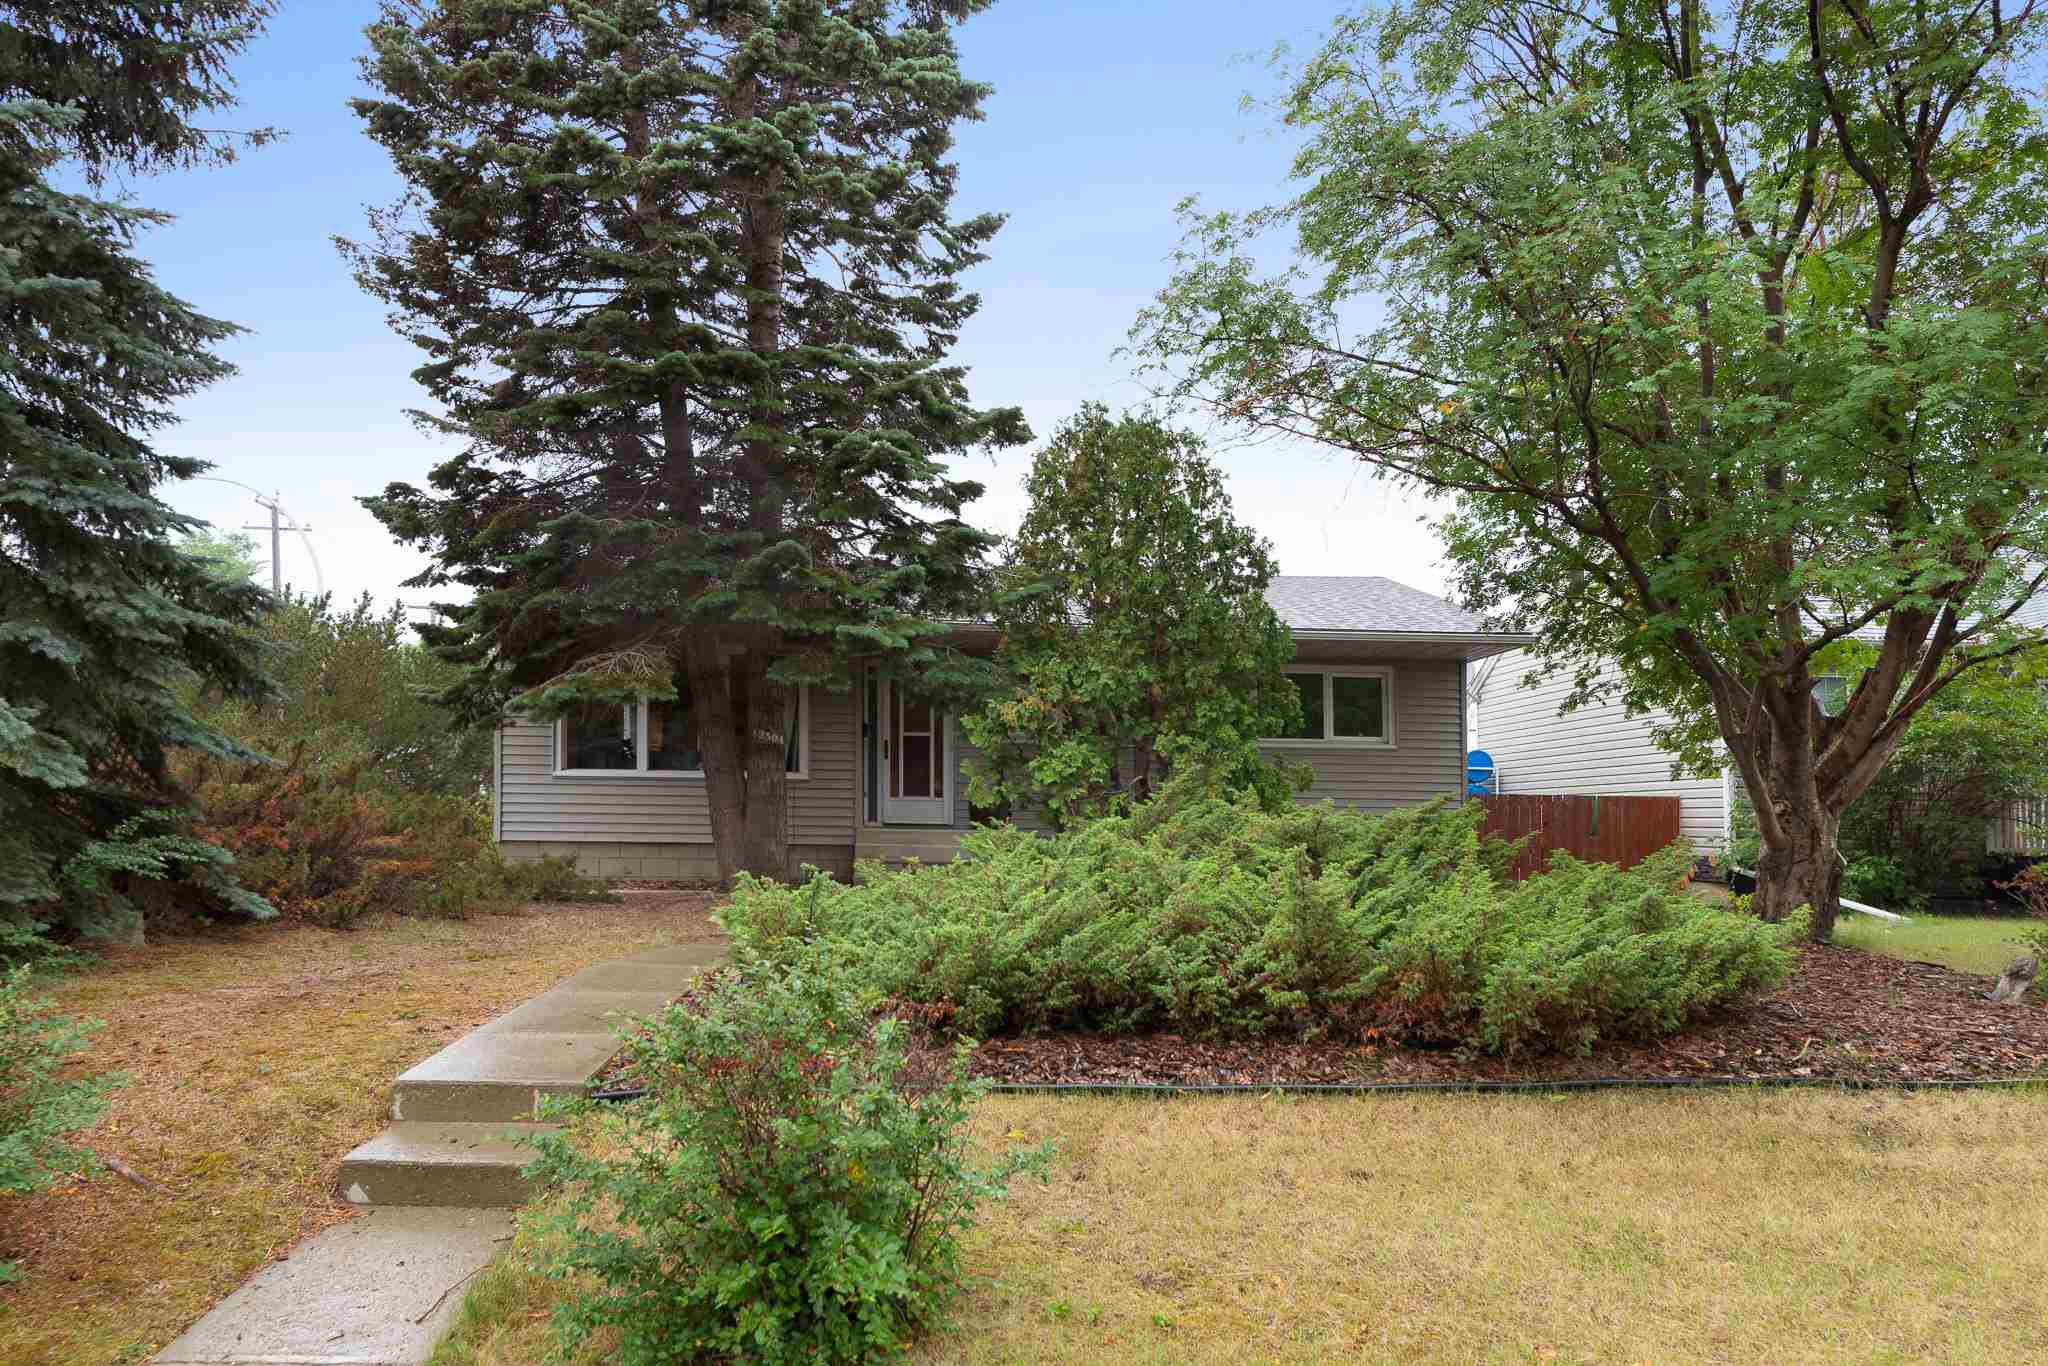 """Welcome to this classic 1,100 sq ft+ boomers bungalow with an OVERSIZED DOUBLE DETACHED GARAGE on a HUGE 50 x 150 CORNER LOT IN ELMWOOD PARK! Have you ever heard the term """"Good Bones""""? Well this fits that description if I've ever seen it. Not to mention the TIKI BAR in the basement will take you out of Edmonton and onto the beach! There's been plenty of upgrades as well! With a HIGH EFFICIENCY FURNACE in 2019, SHINGLES in 2016, VINYL SIDING in 2016, THE SEWER was redone in 2016, the kitchen was tastefully re-done about 15 years ago with golden oak cabinets, and some of the original hardwood still remains! With 3 bedrooms and 1 bathroom on the main floor it's perfect for the growing family! Downstairs there's a second kitchen, 1 more bedroom and bathroom, as well as the beloved Tiki Bar. Many good times were had down there, time for it to be restored to its former glory! Last but not least, the garden in the back yard is to die for...and the best producing raspberry bush you've ever seen! Come today!!!"""